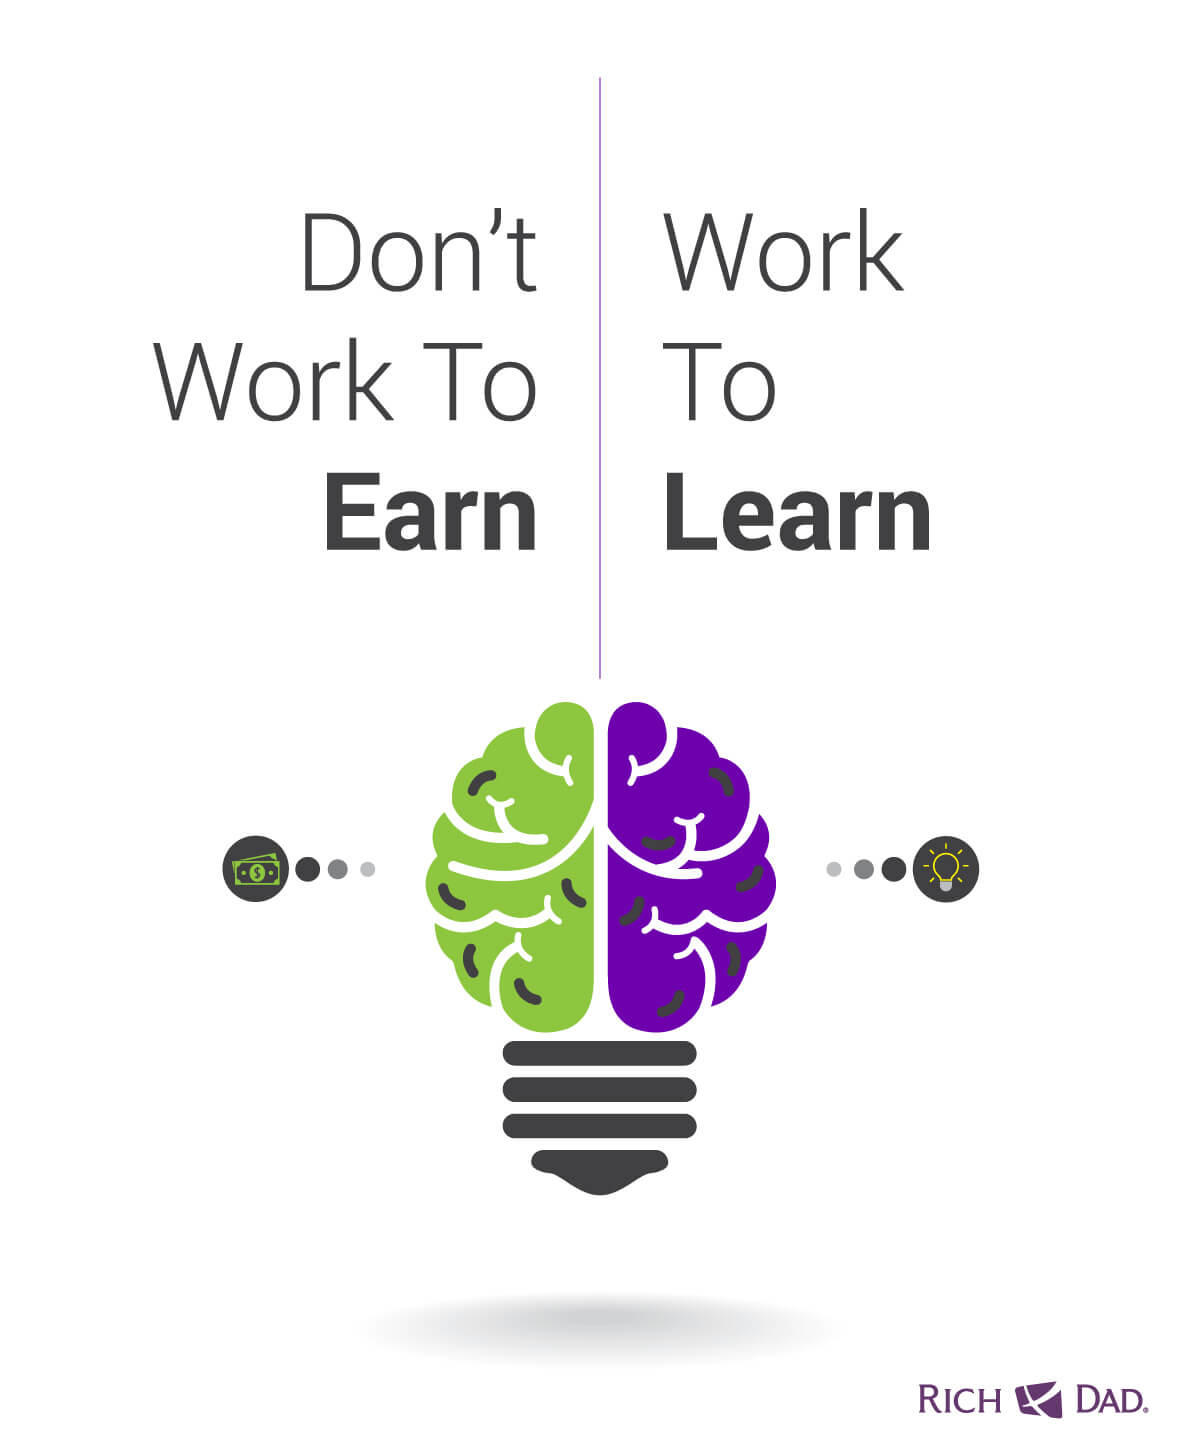 Don't work to earn, Work to learn